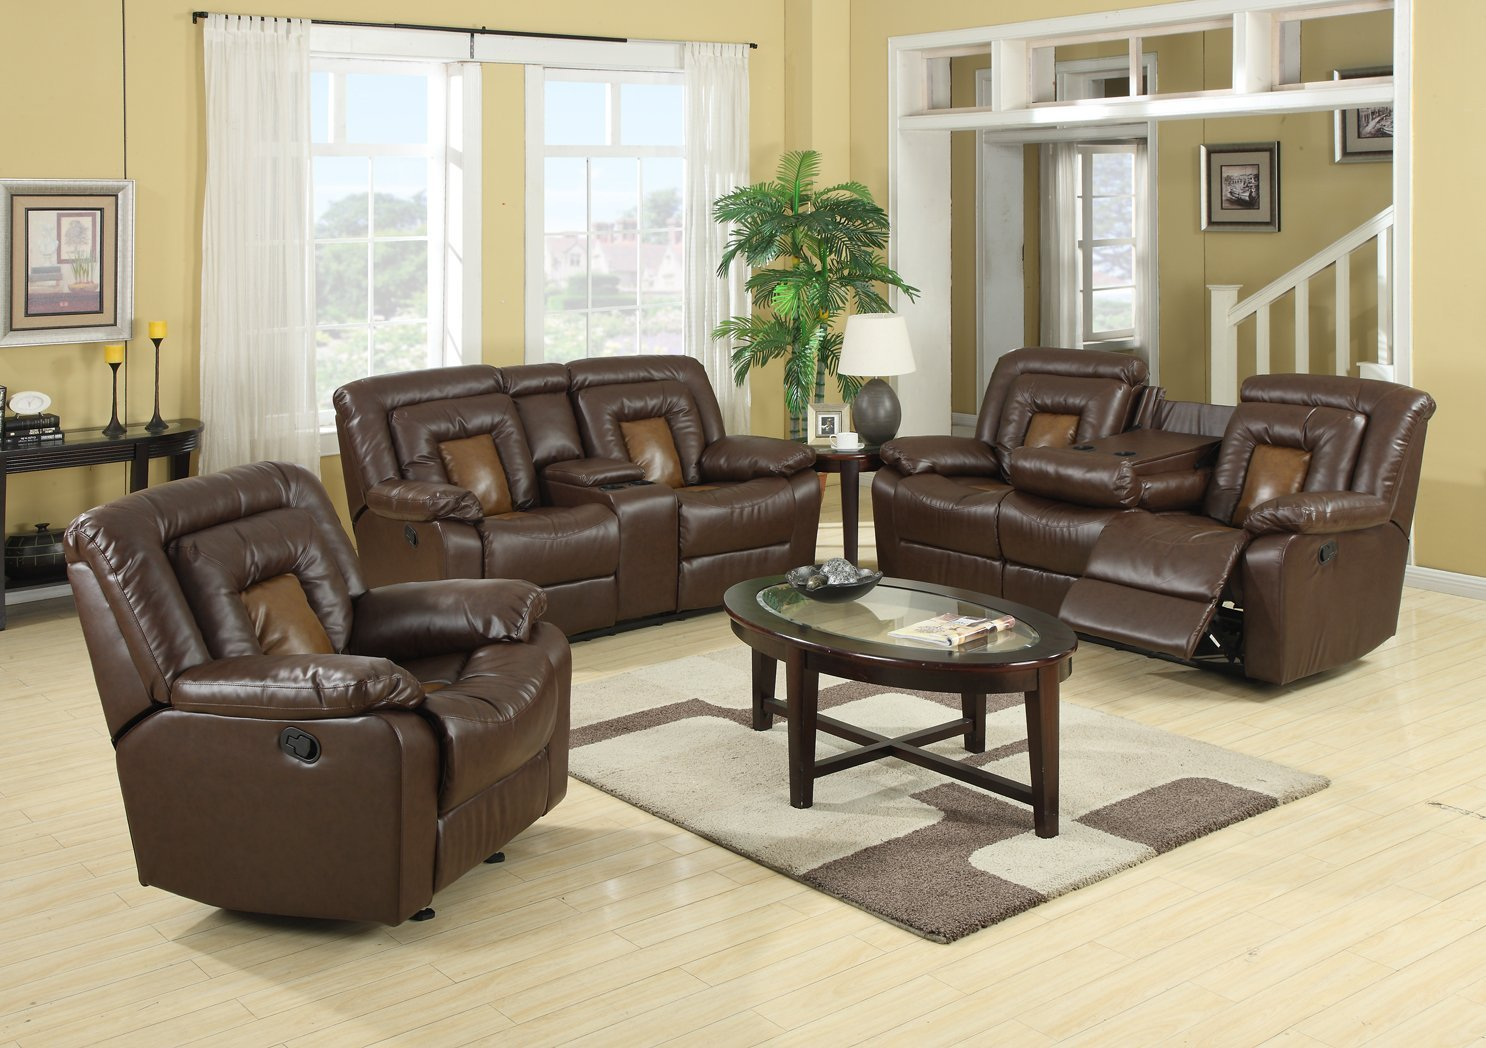 Cheap Ashley Furniture Leather Sofa And Loveseat Find Ashley